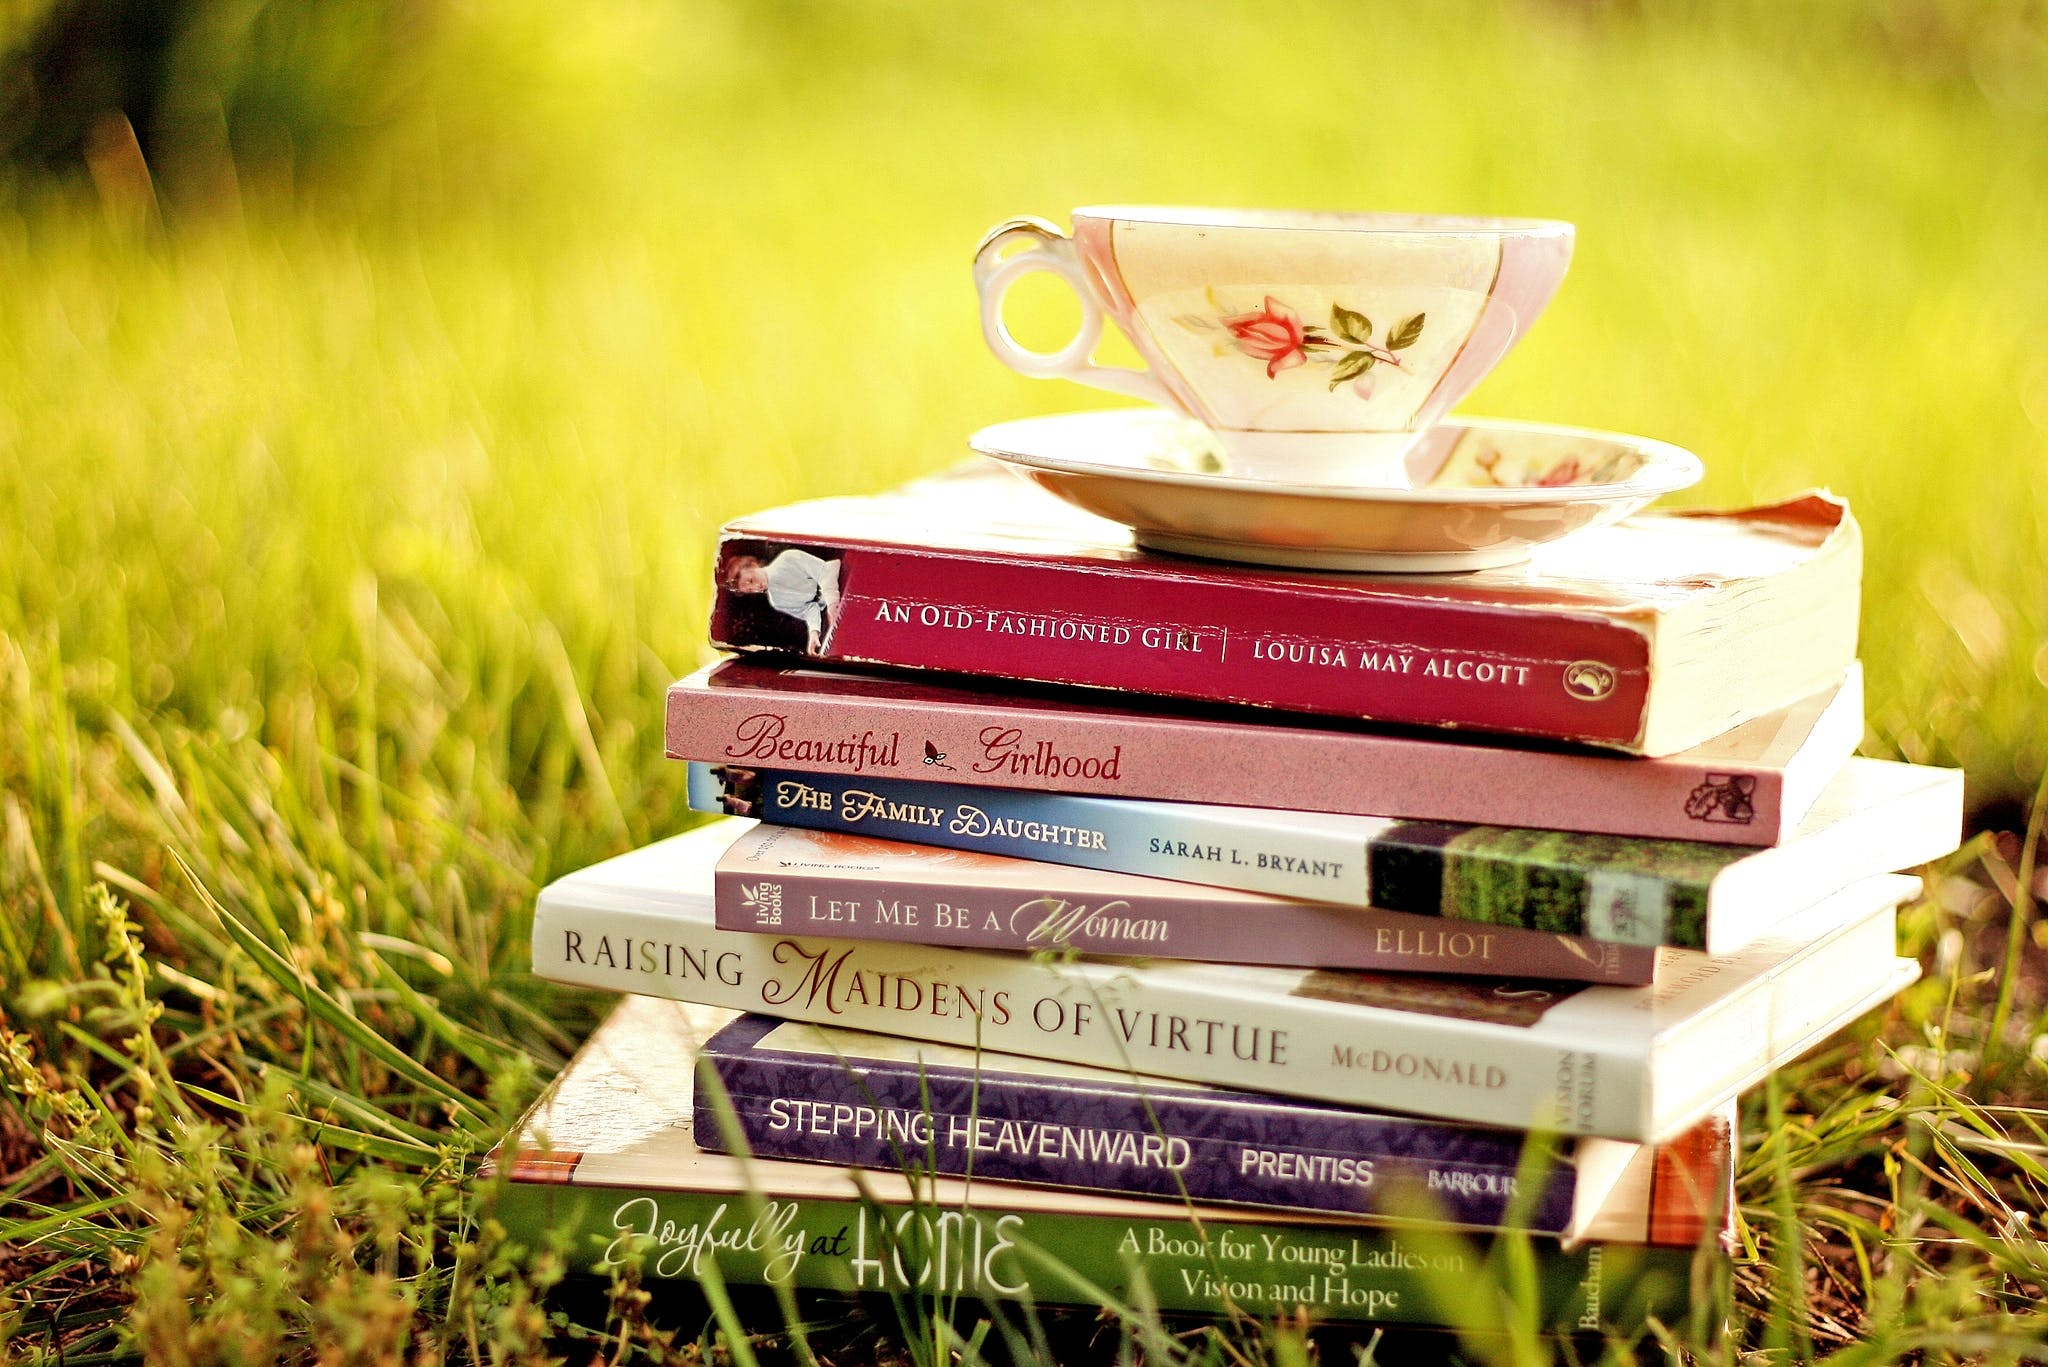 Grass,Book,Cup,Table,Teacup,Publication,Tree,Furniture,Coffee cup,Plant